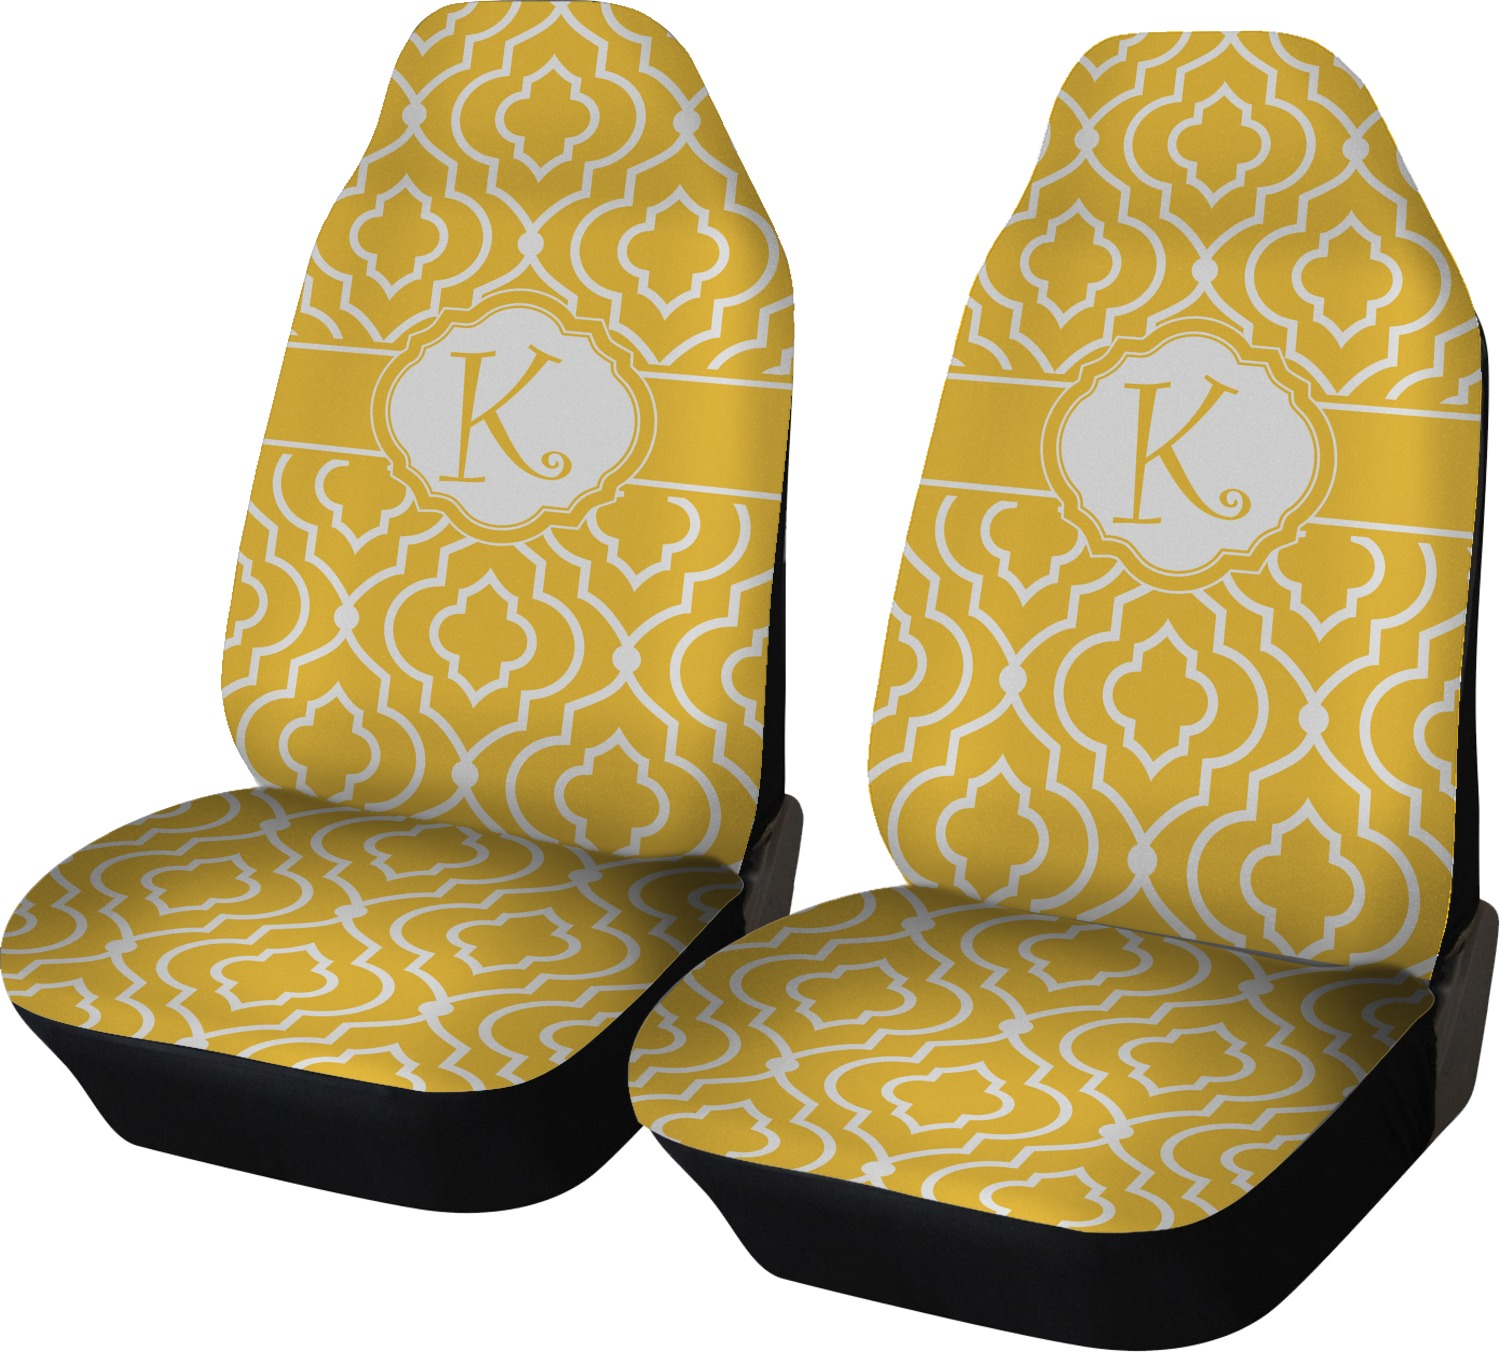 Trellis Car Seat Covers Set Of Two Personalized